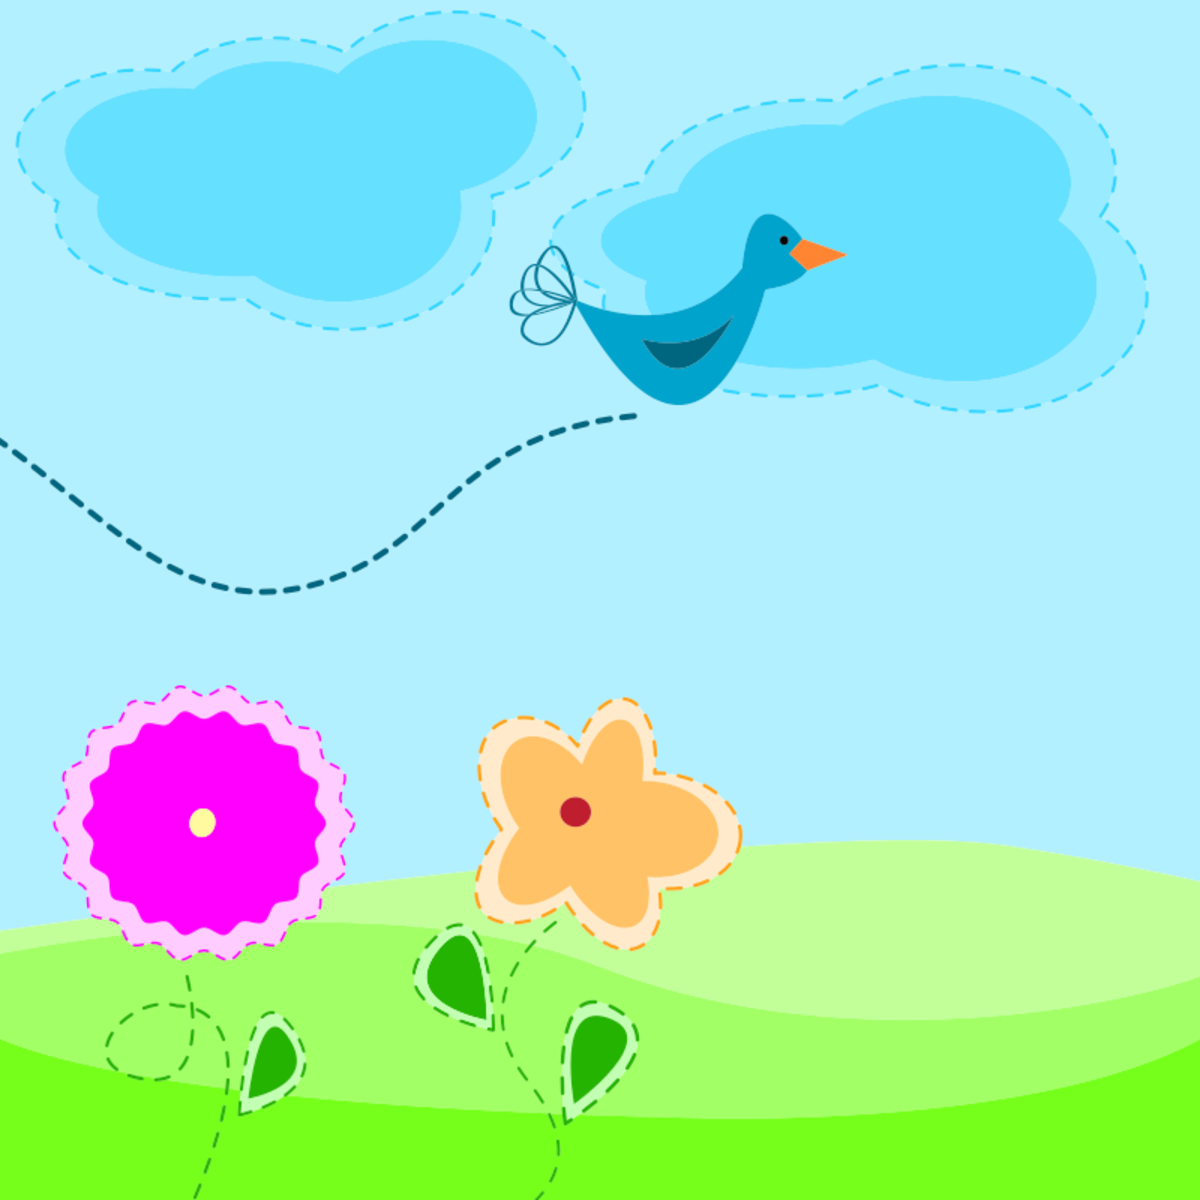 Flowers and Bird Flying in Blue Sky